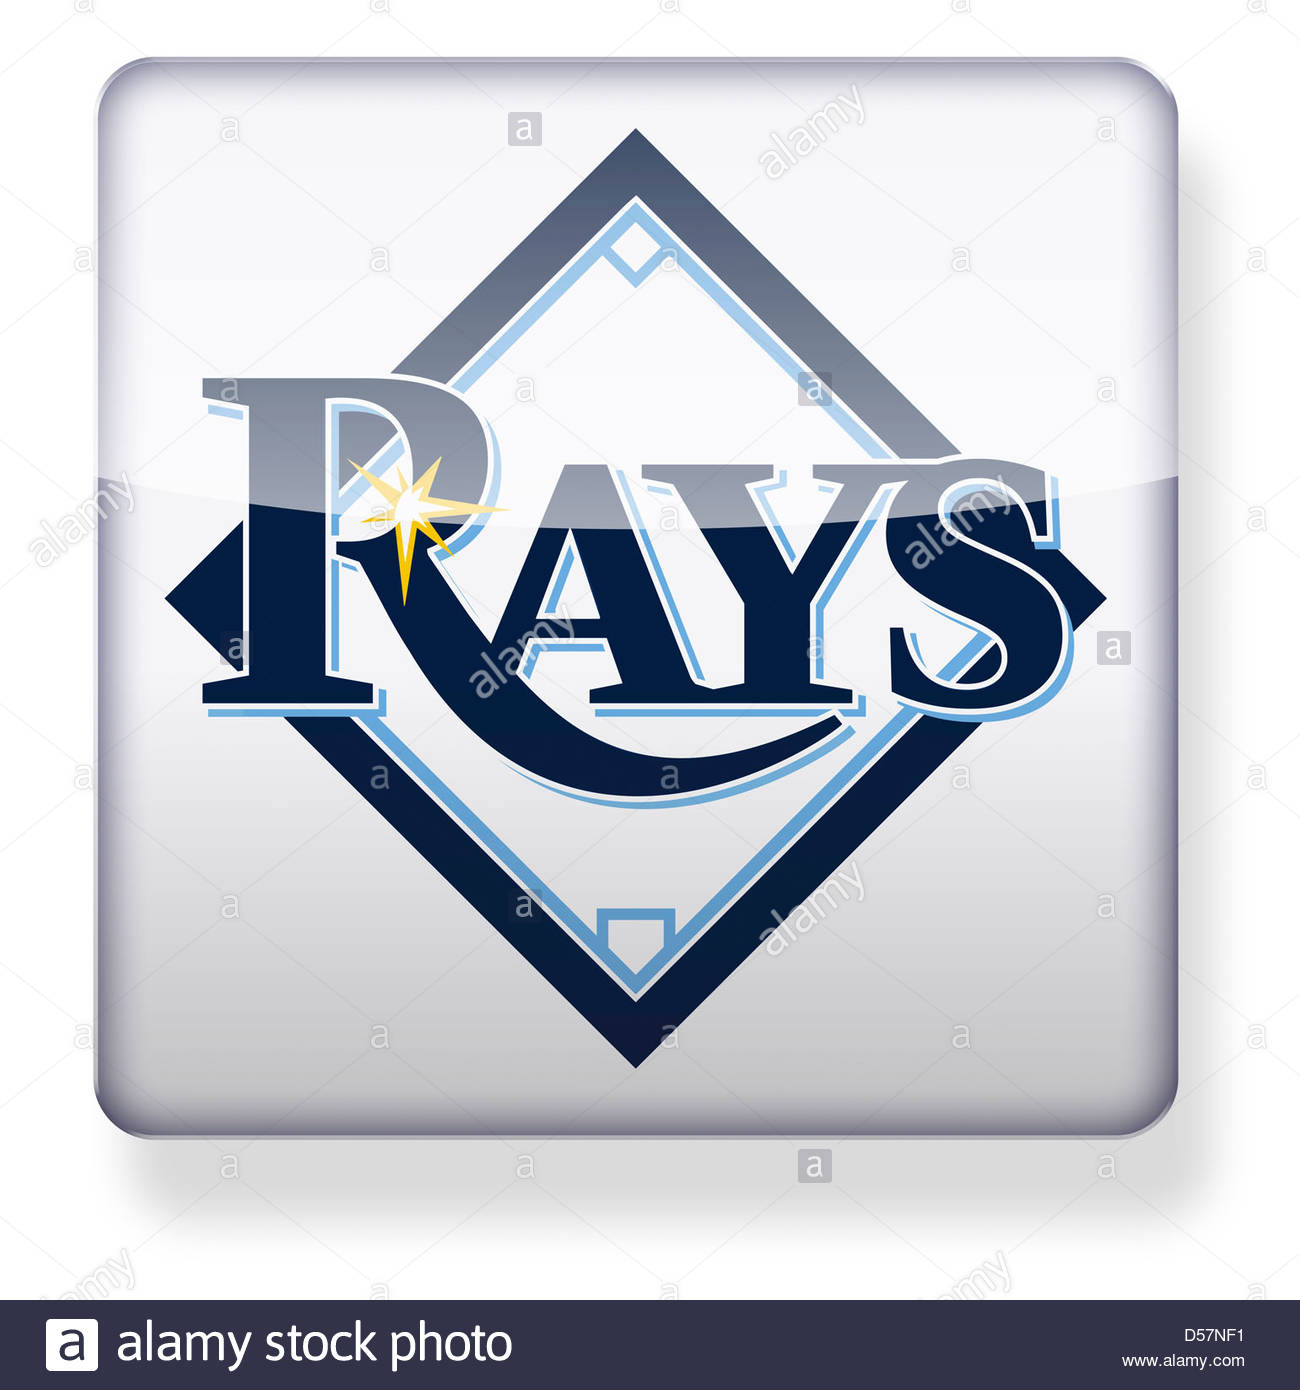 tampa bay rays logo as an app icon clipping path included stock photo alamy https www alamy com stock photo tampa bay rays logo as an app icon clipping path included 54874933 html